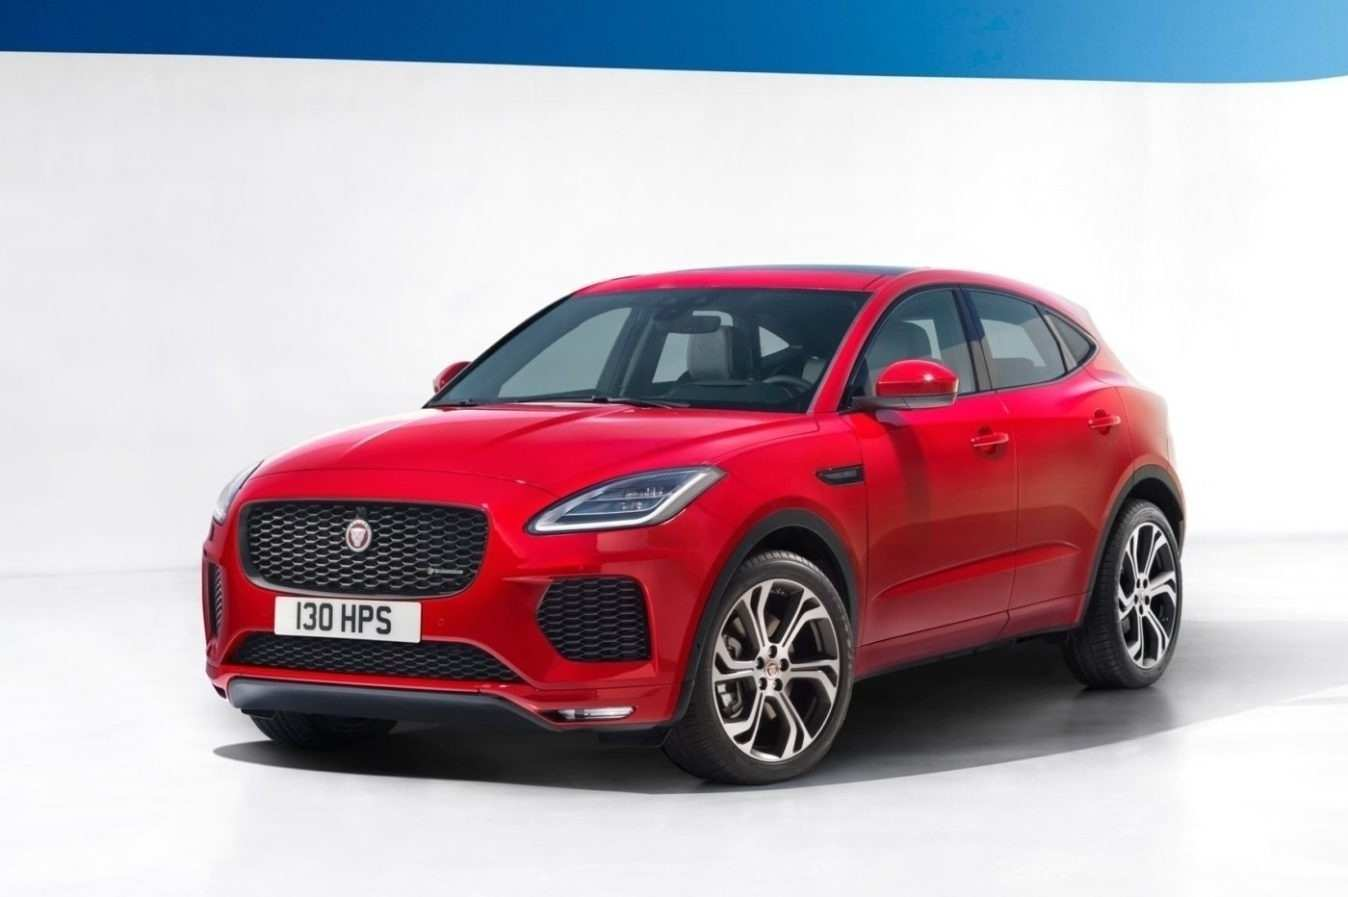 65 The Best 2019 Jaguar Xq Crossover Images